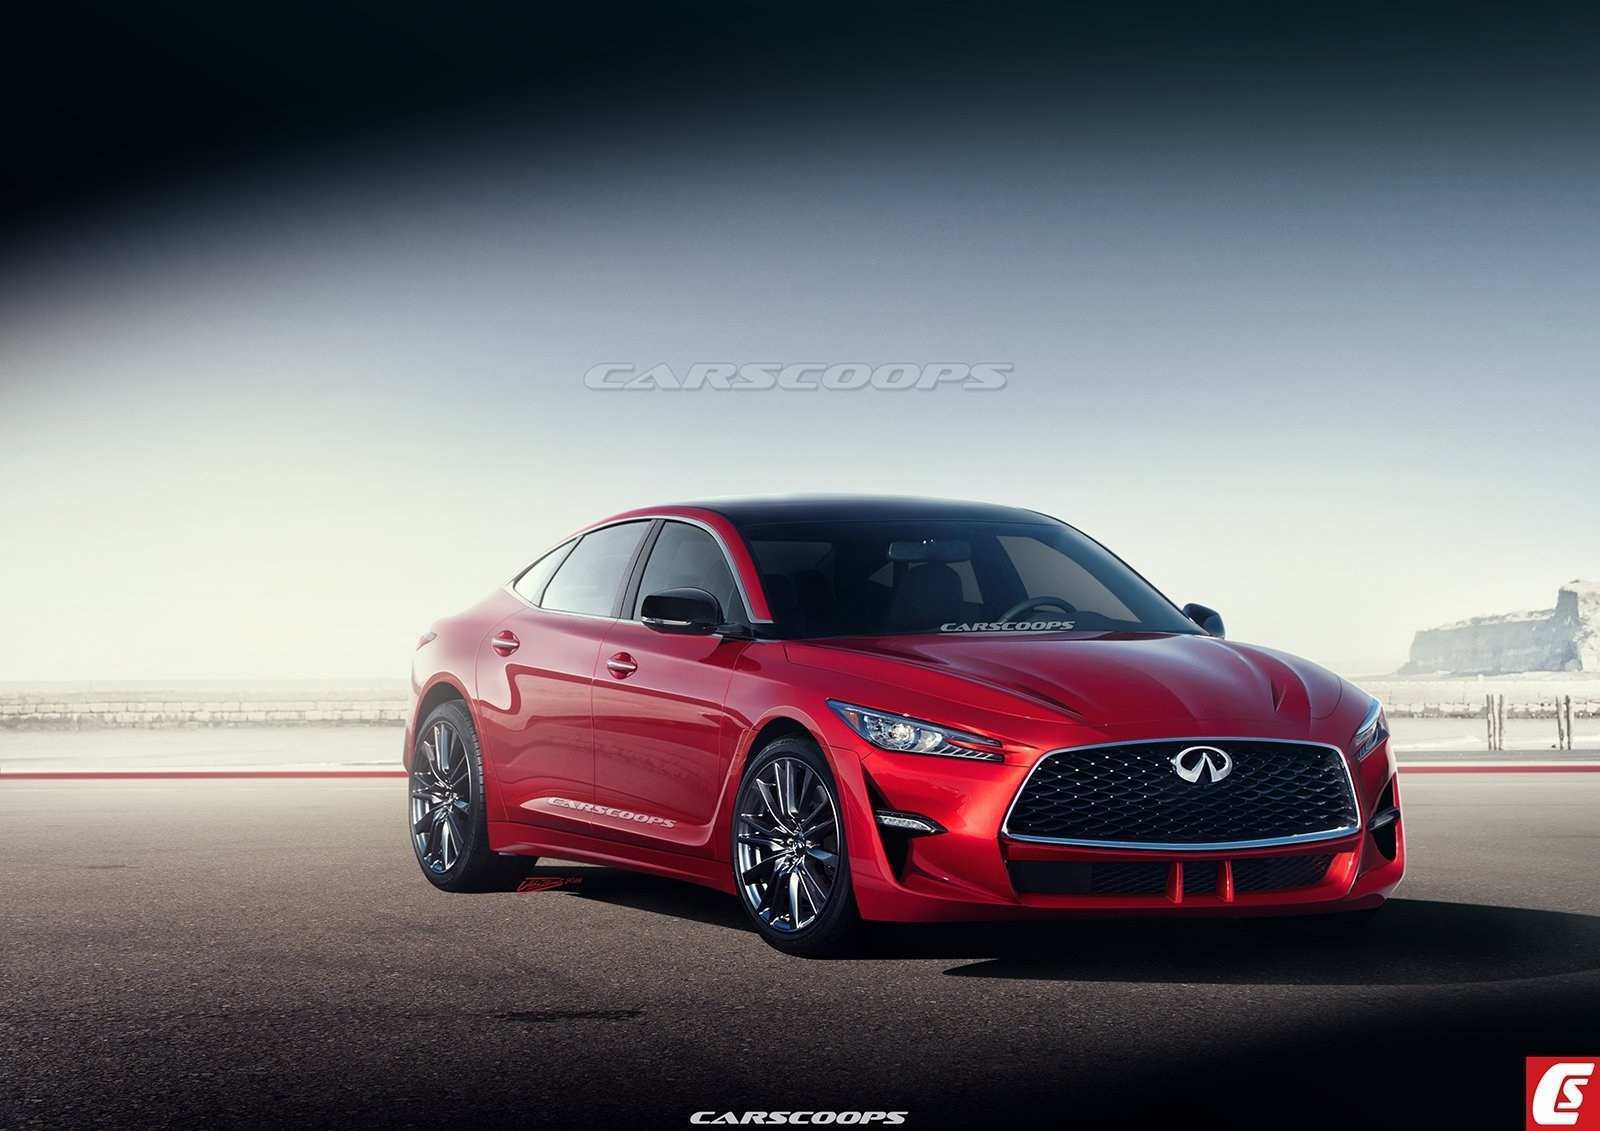 11 All New 2020 Infiniti QX50 Wallpaper with 2020 Infiniti QX50